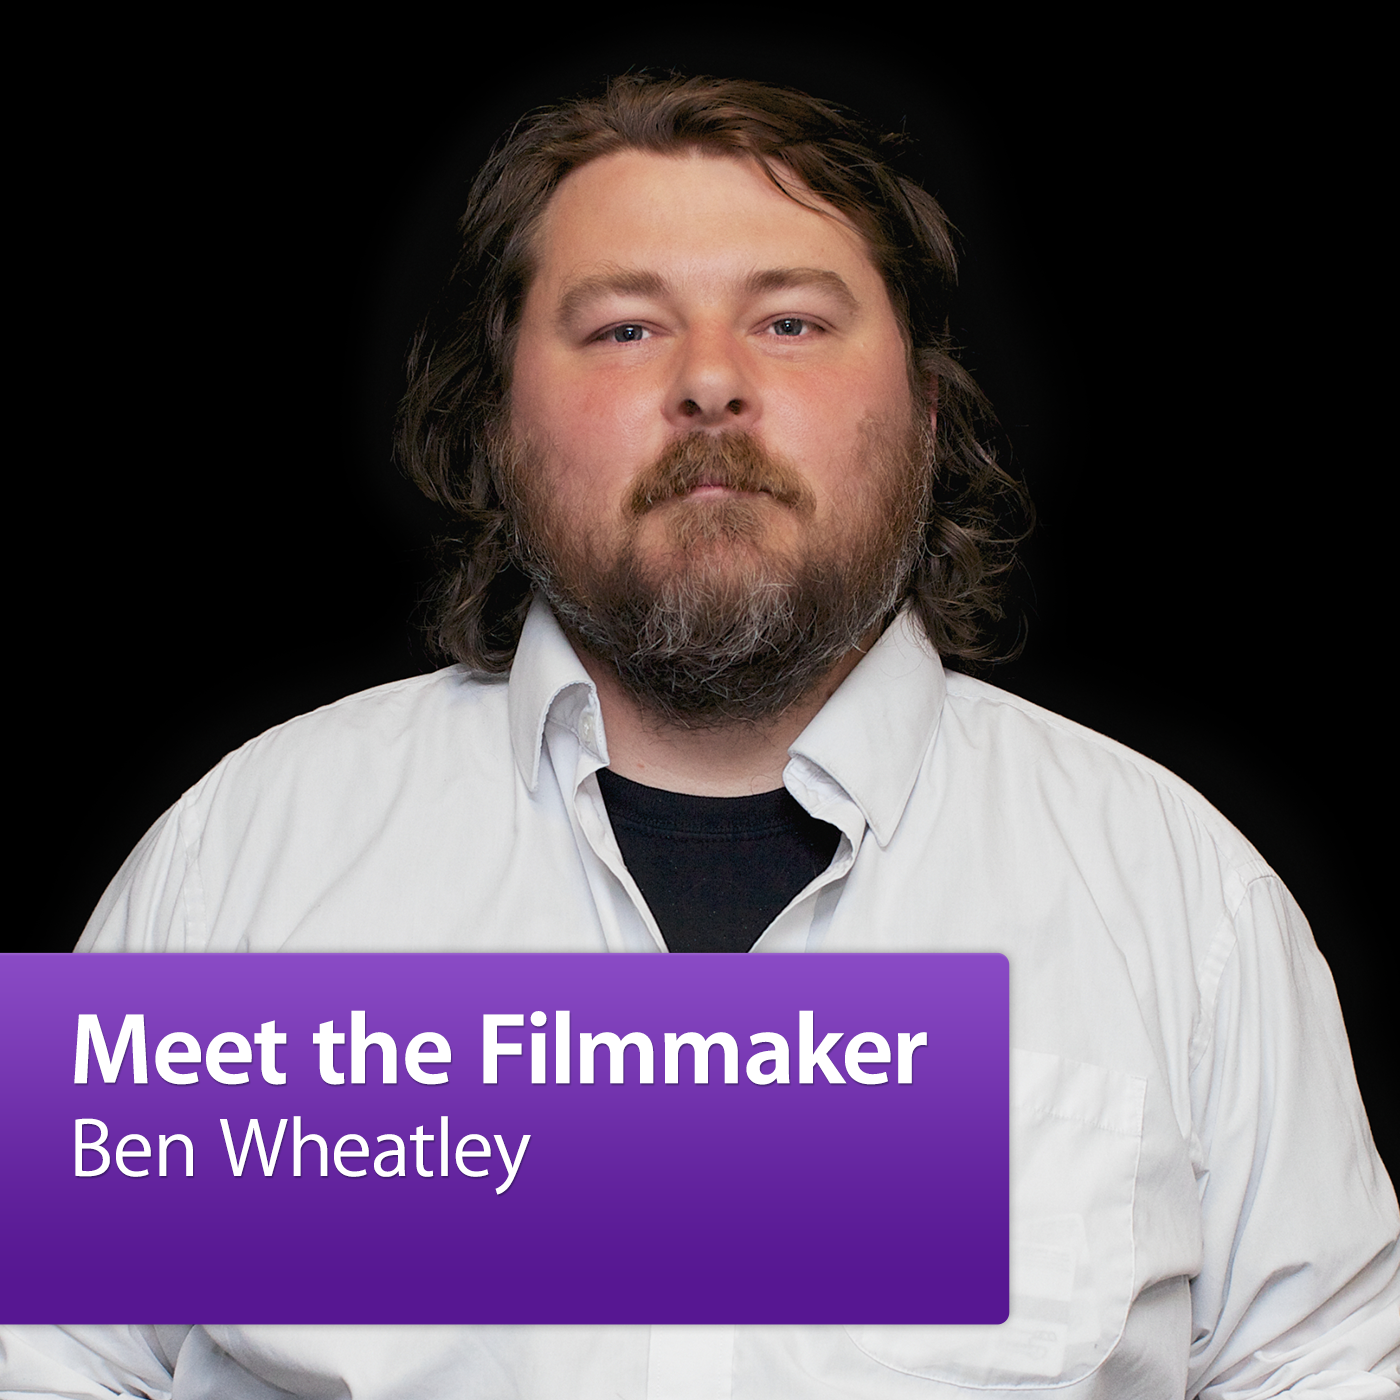 Ben Wheatley: Meet the Filmmaker